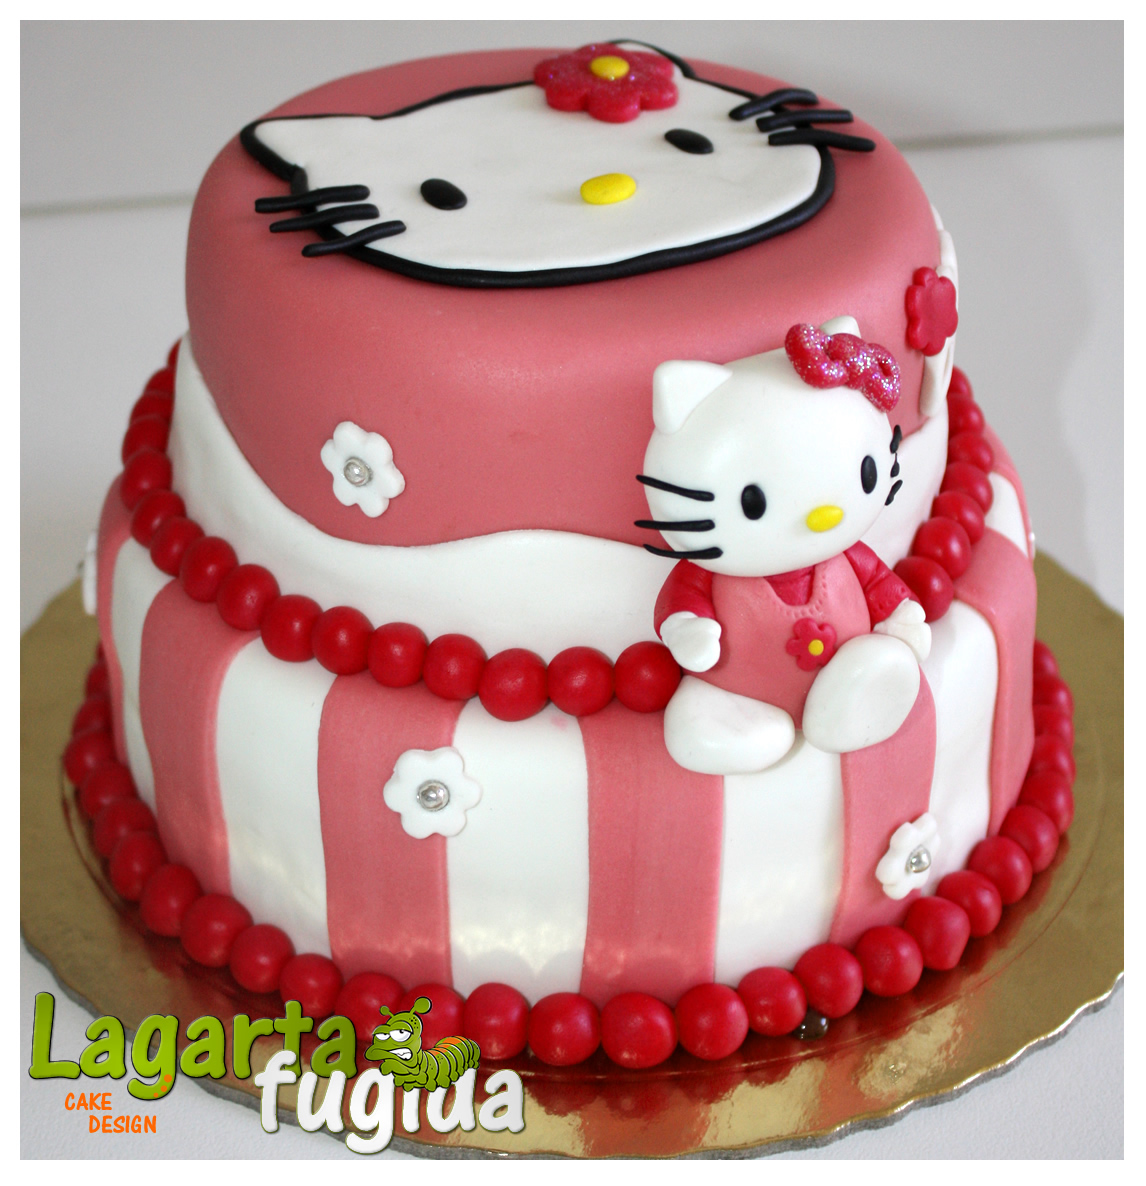 Hello Kitty Cake Design Ideas : Design Cake Joy Studio Design Gallery - Best Design